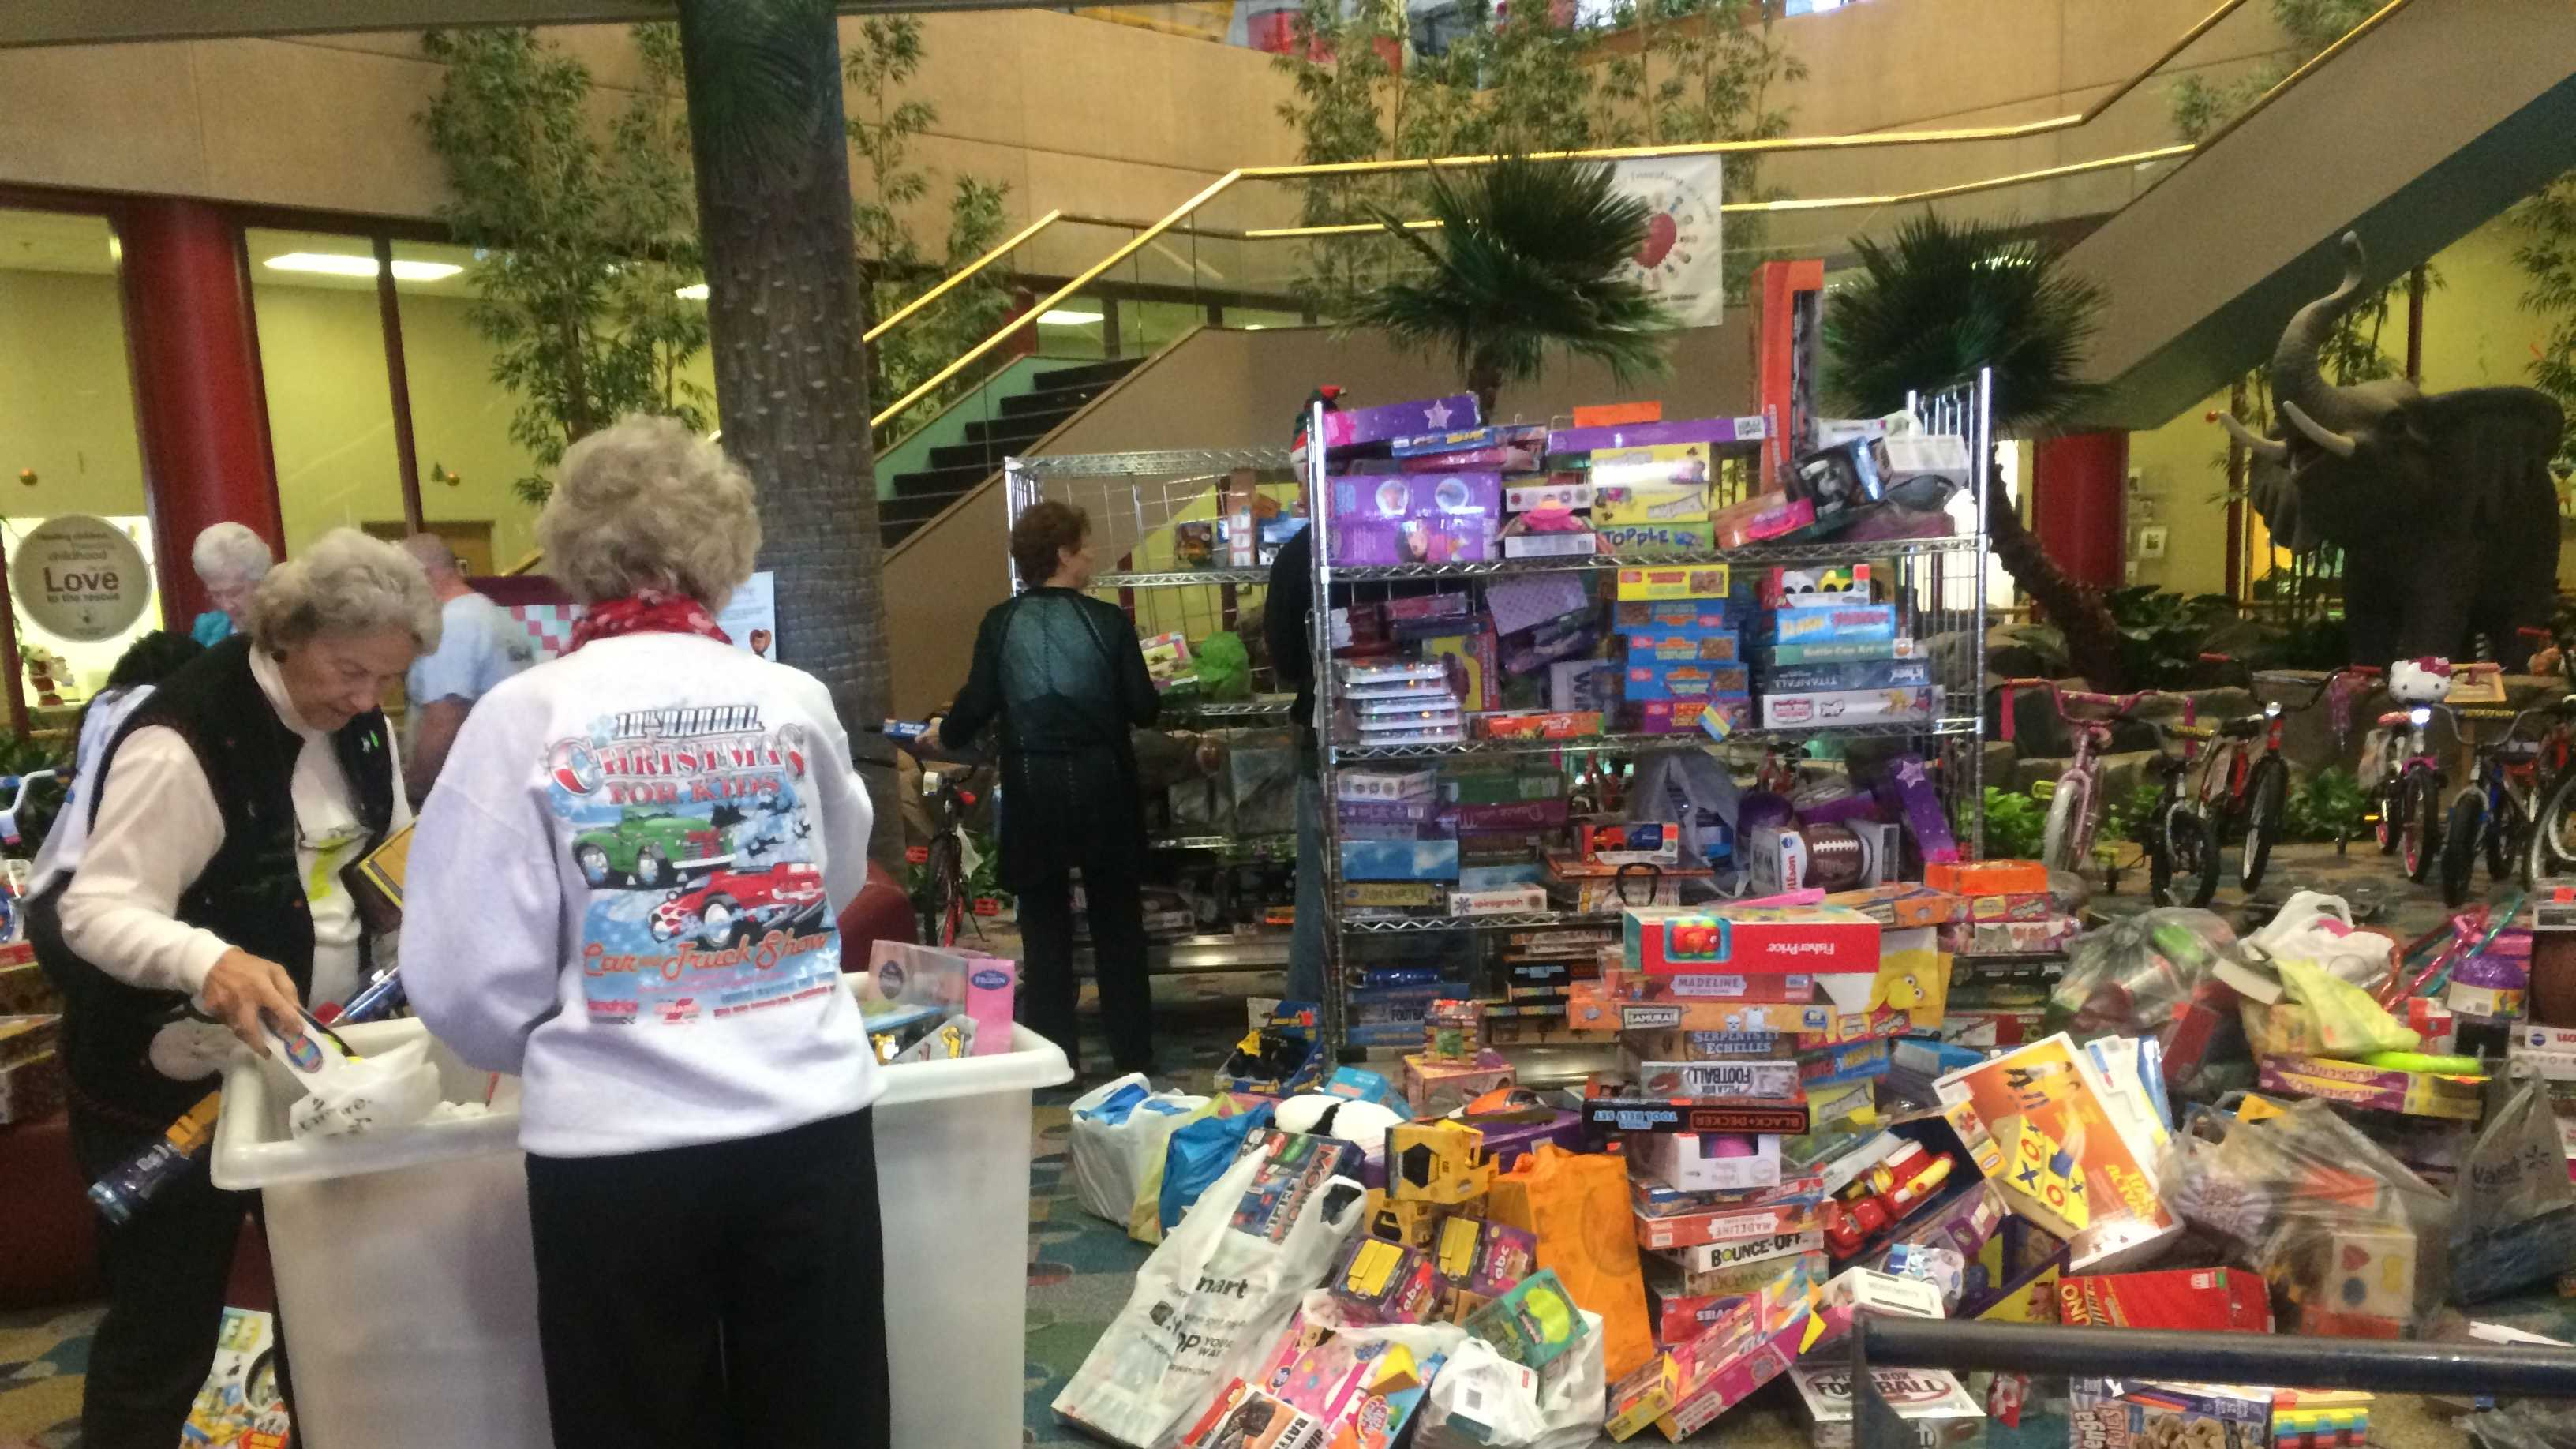 Each year, Shriners receives thousands of toys from the Carolina GM Association